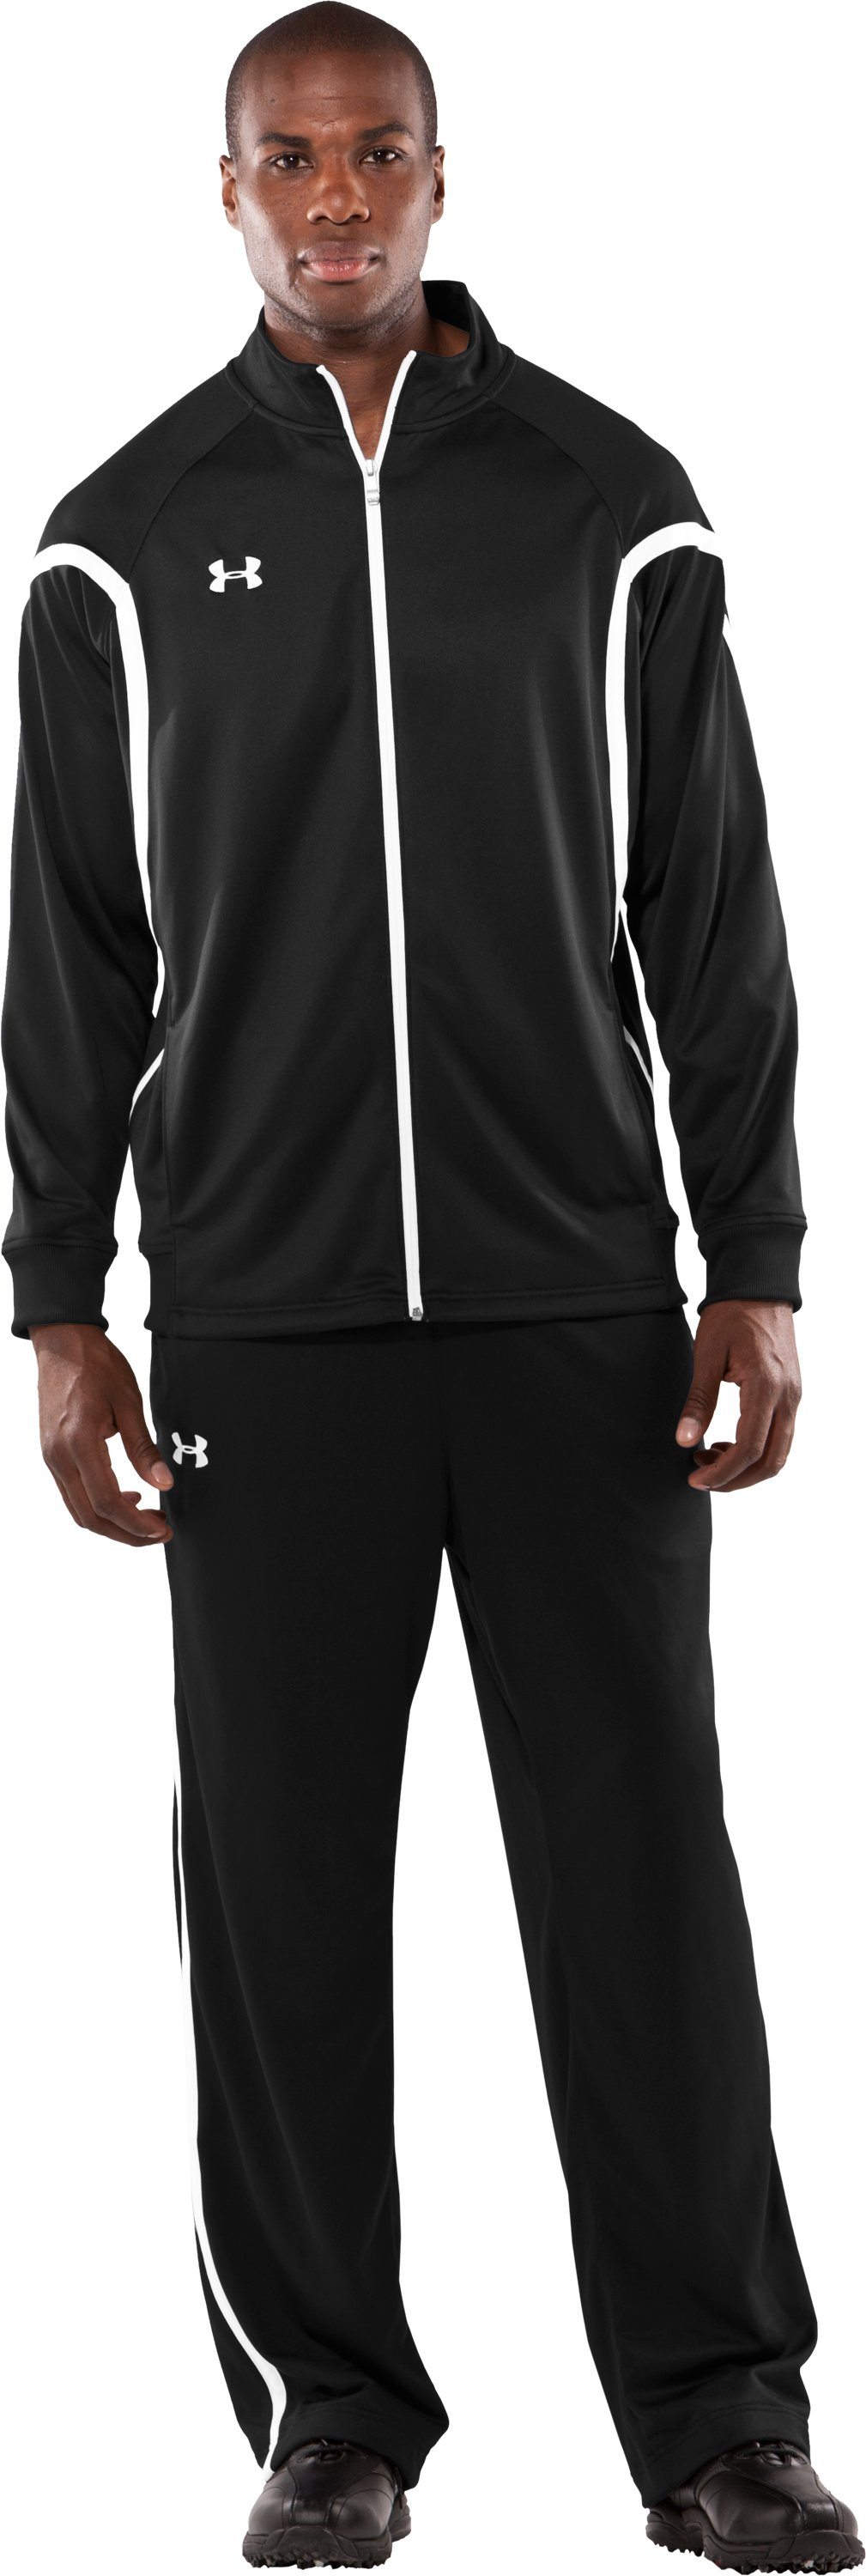 Men's Team Knit Warm-Up Jacket, Black , Front